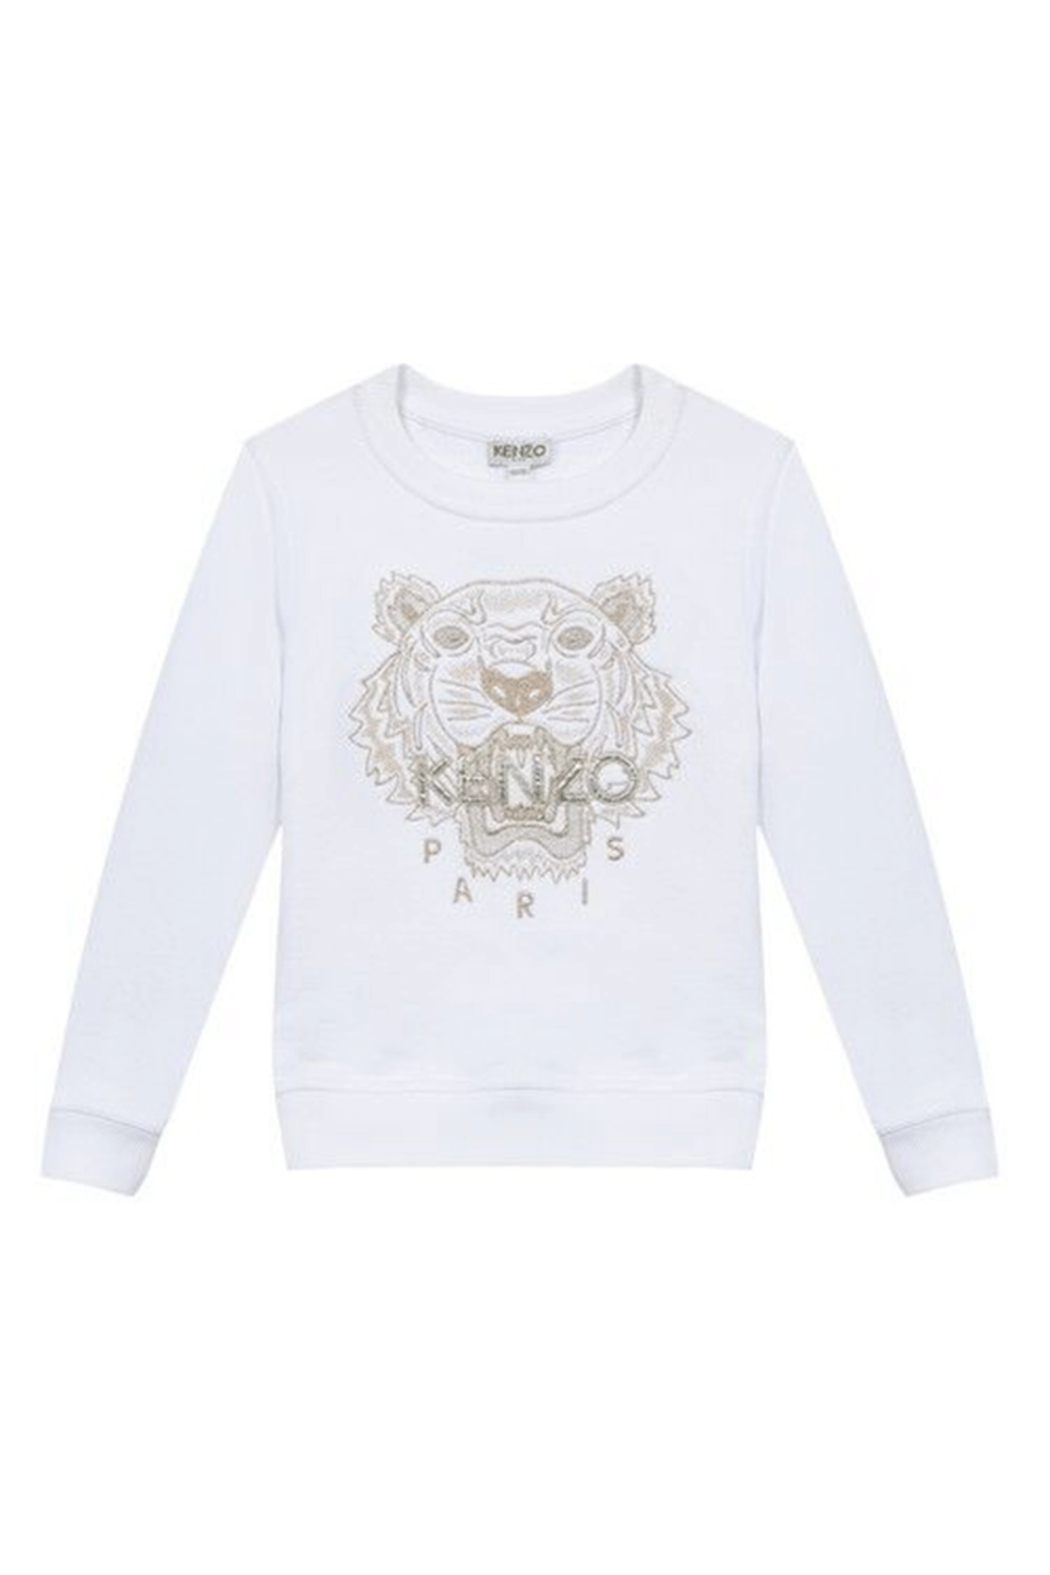 9b7647d09b Kenzo 5-6Y Tiger Paris Sweater from New York City by Mon Petit ...